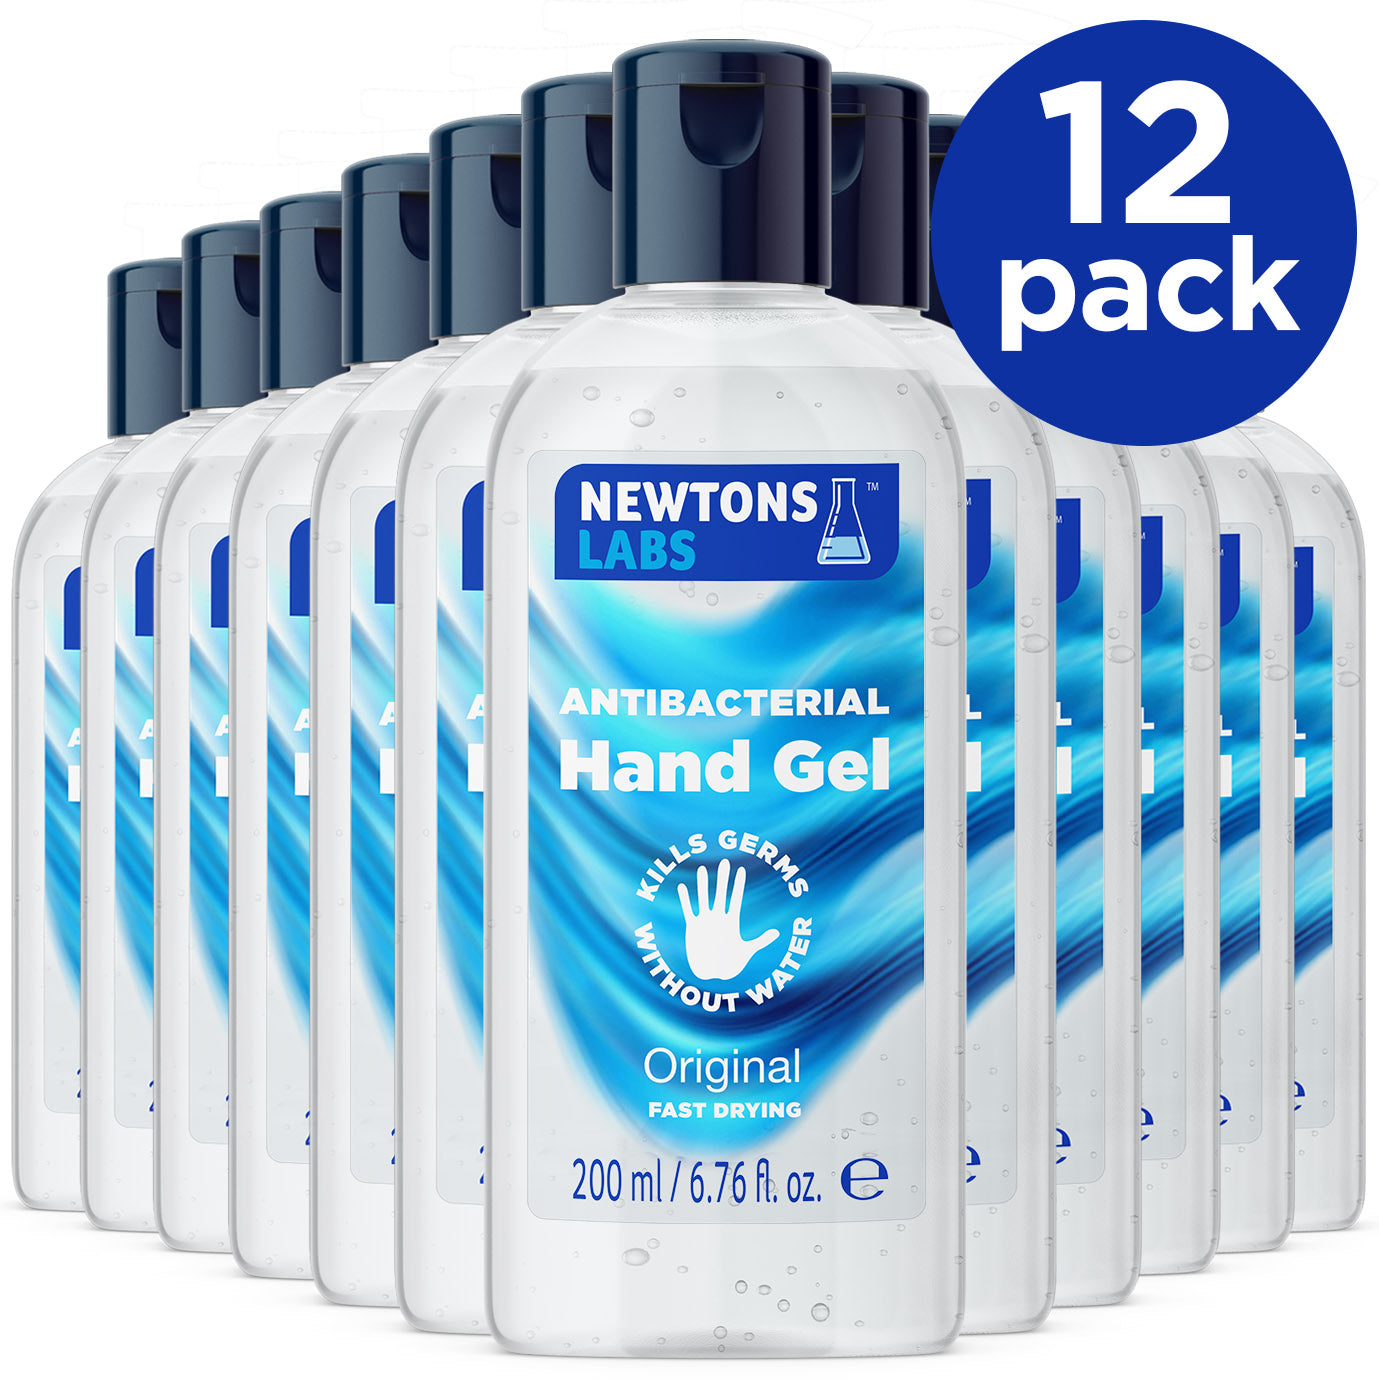 12 Pack - Antibacterial Hand Gel & Sanitiser - 200ml